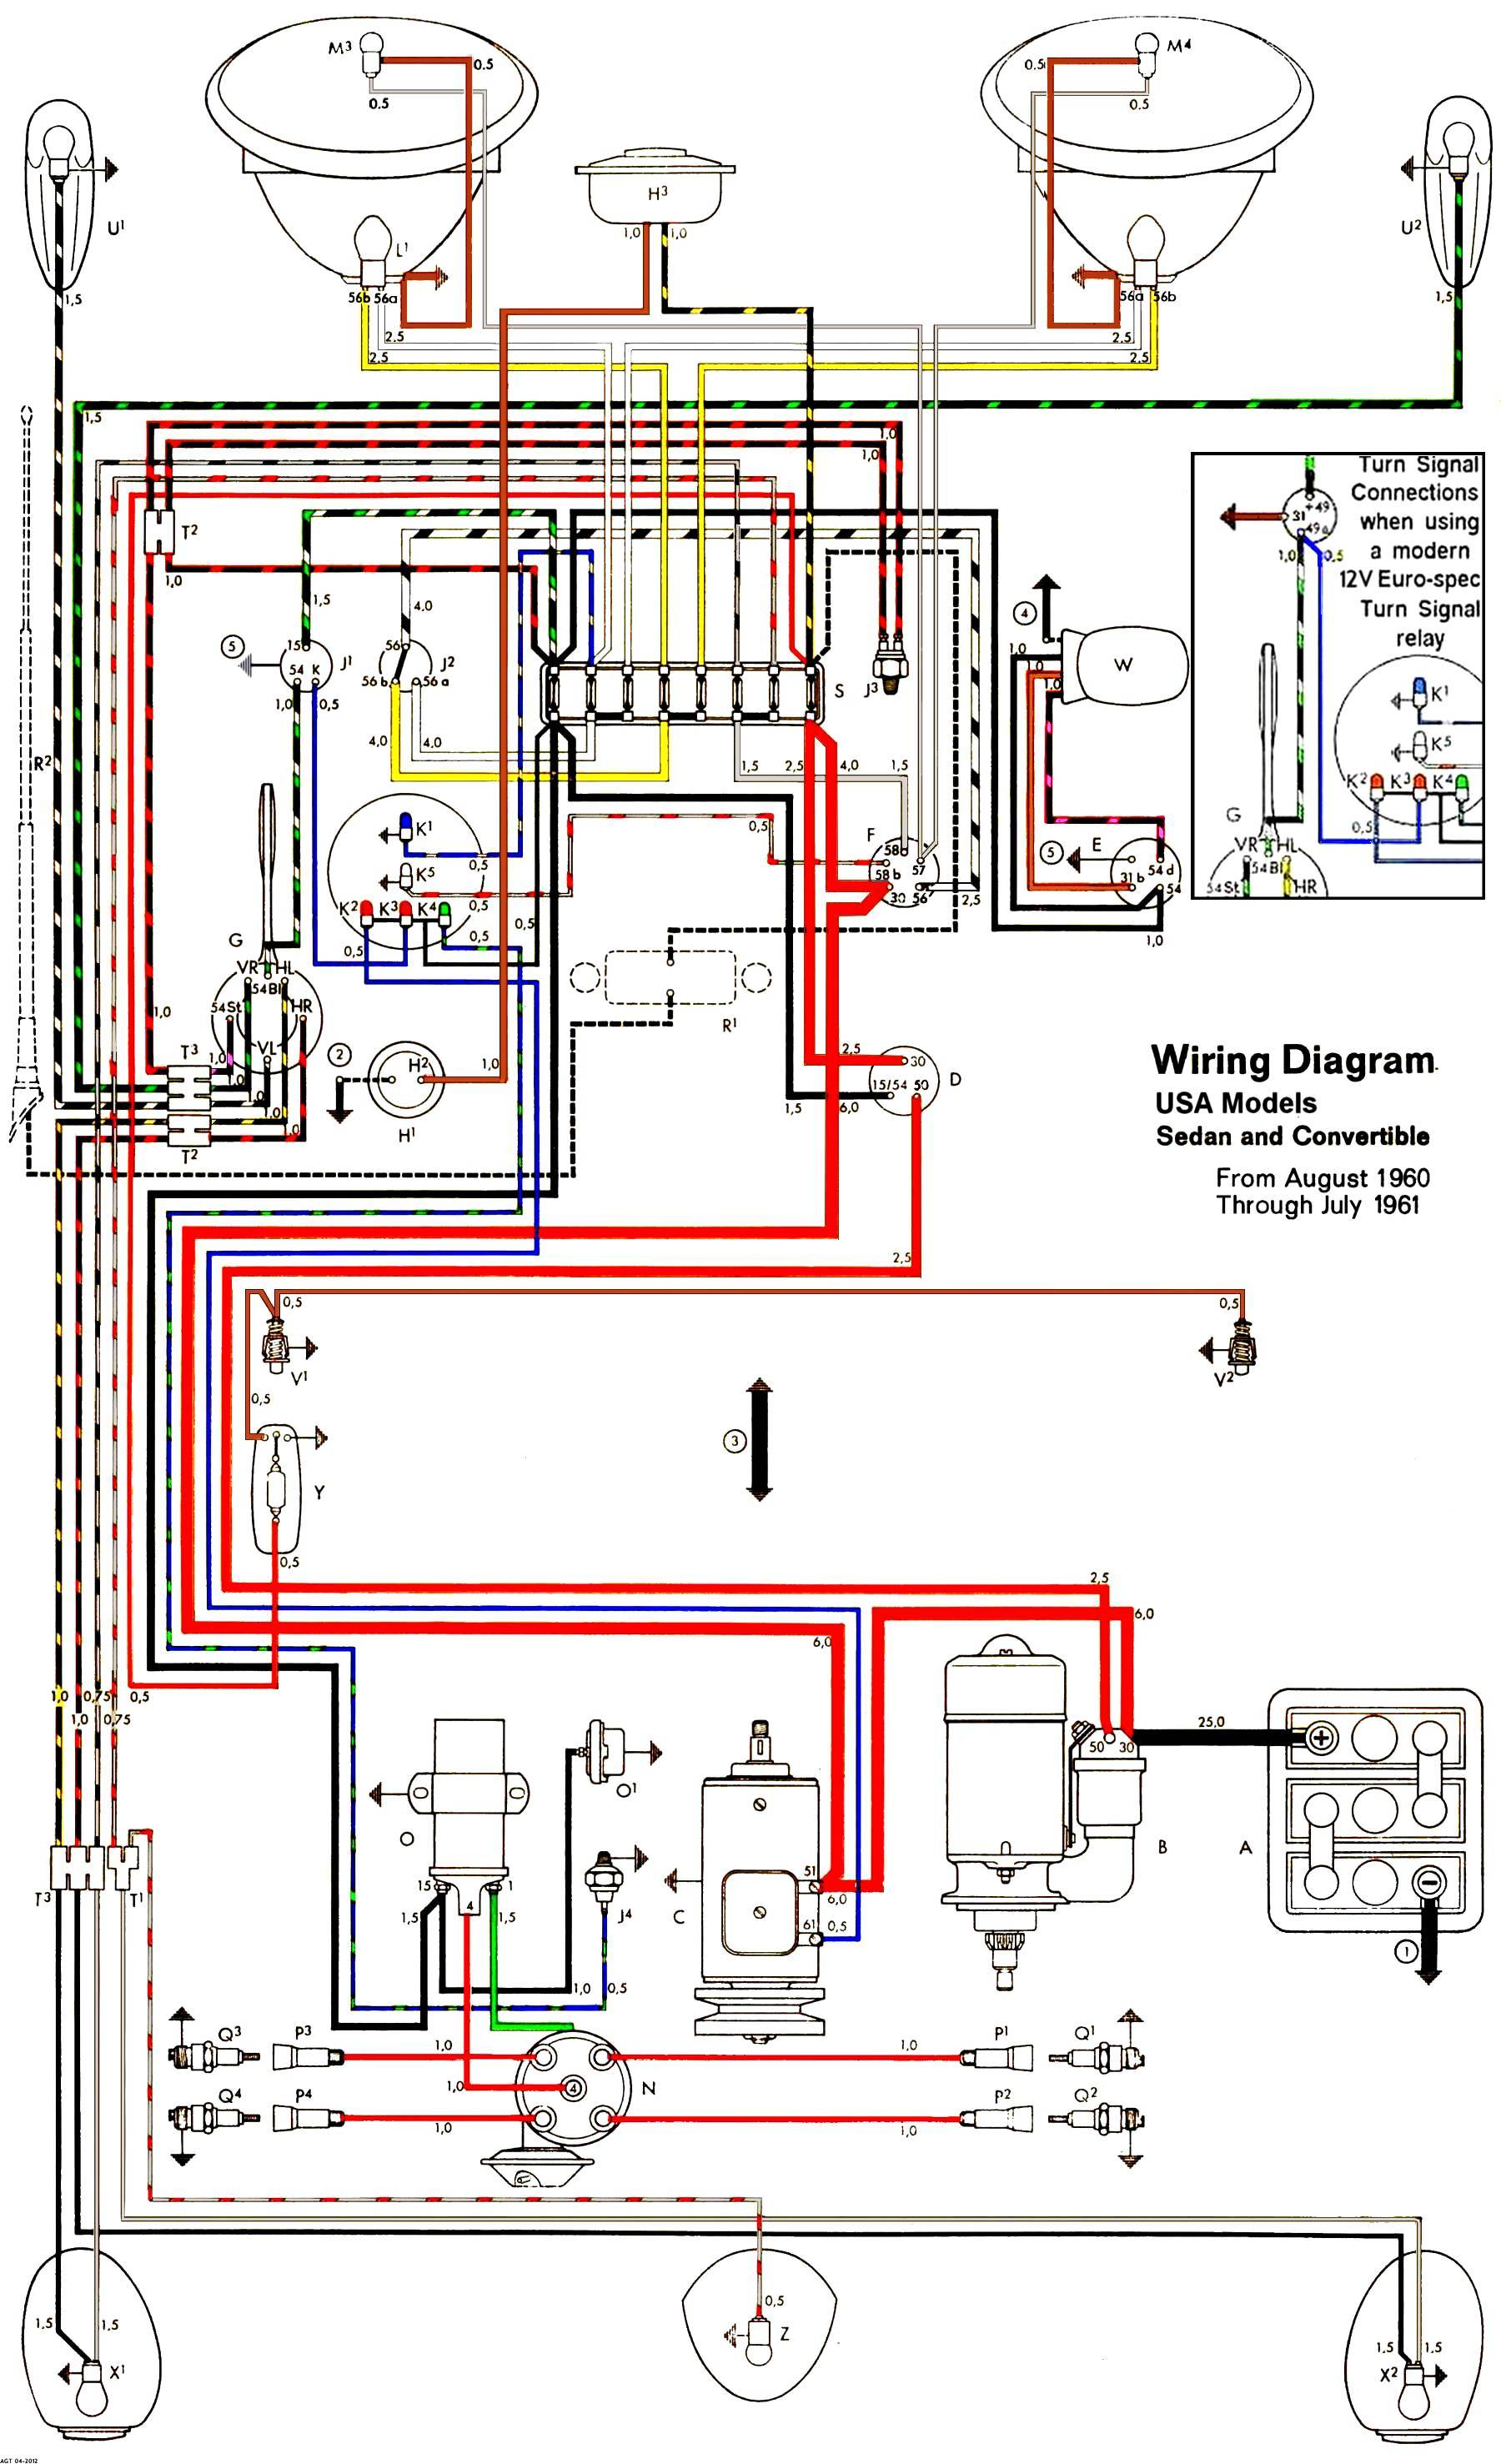 info from 1977 jeep cj5 wiring-diagram 1974 jeep cj5 turn signal wiring diagram #33